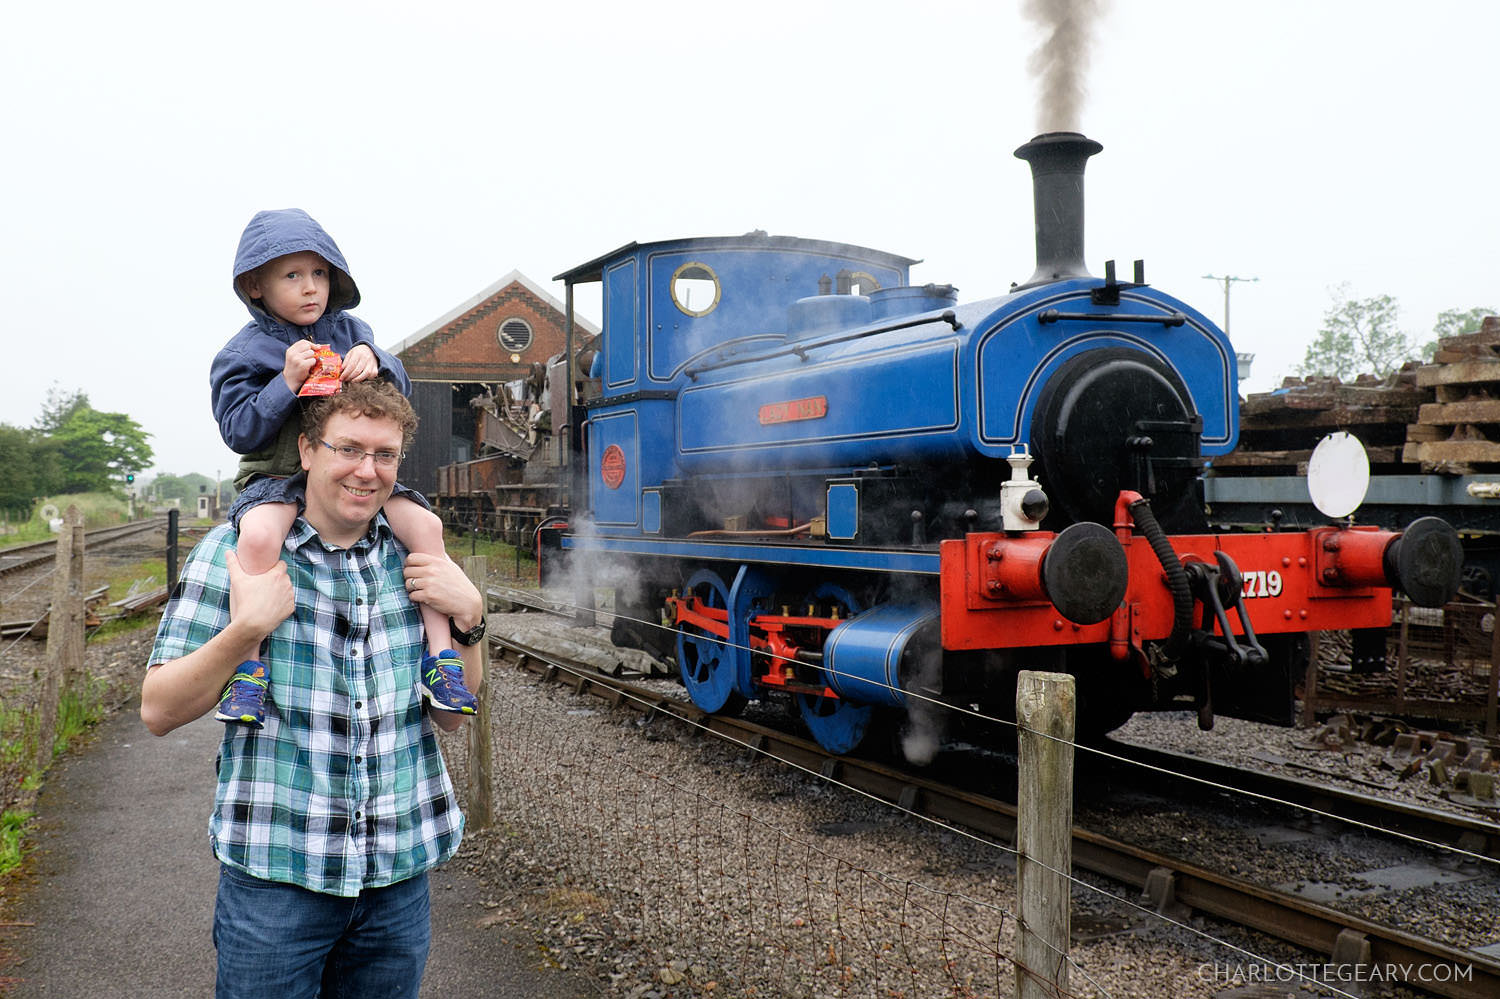 Visiting Thomas the Tank Engine